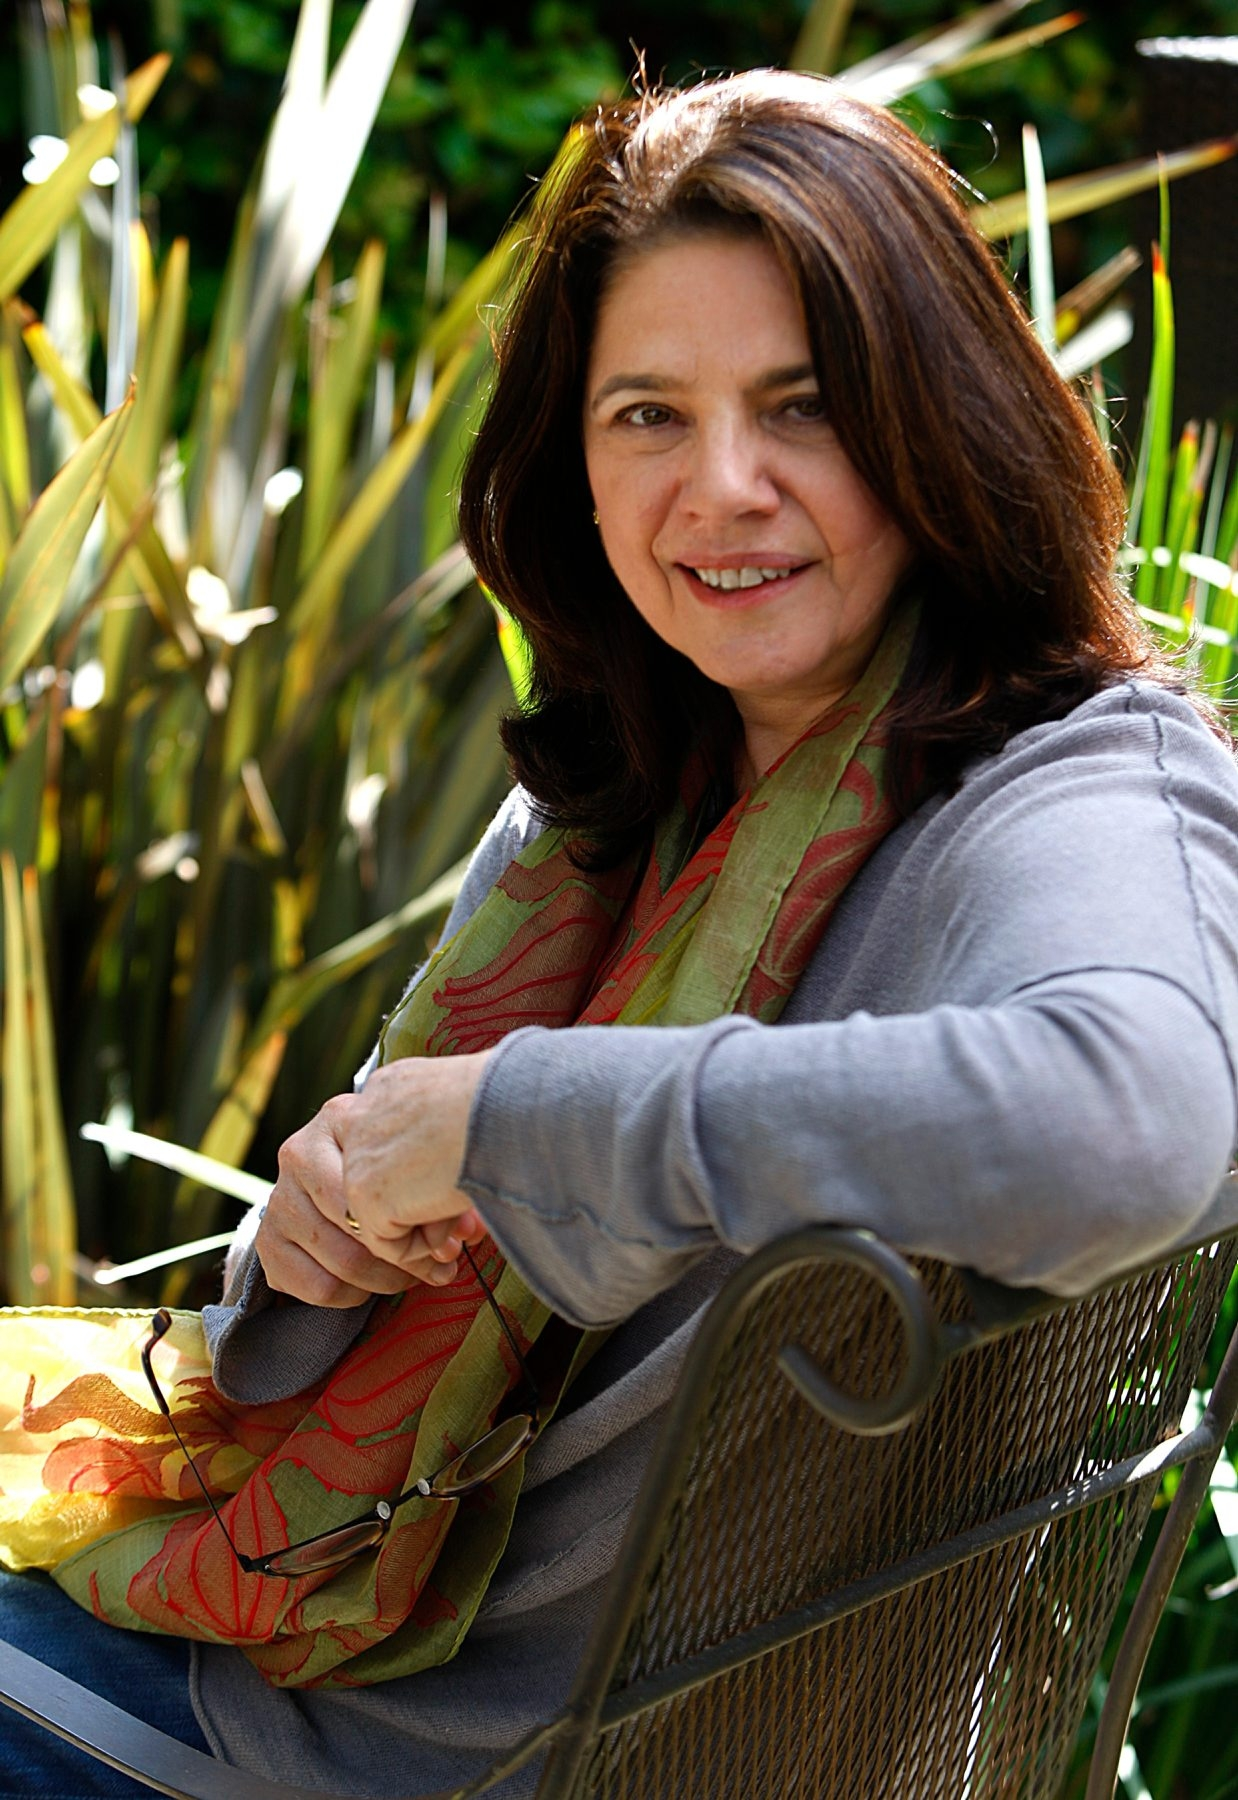 Author, Cathy Shine at her home in Venice Ca. on April 22, 2013.  PHOTOS BY KAREN TAPIA